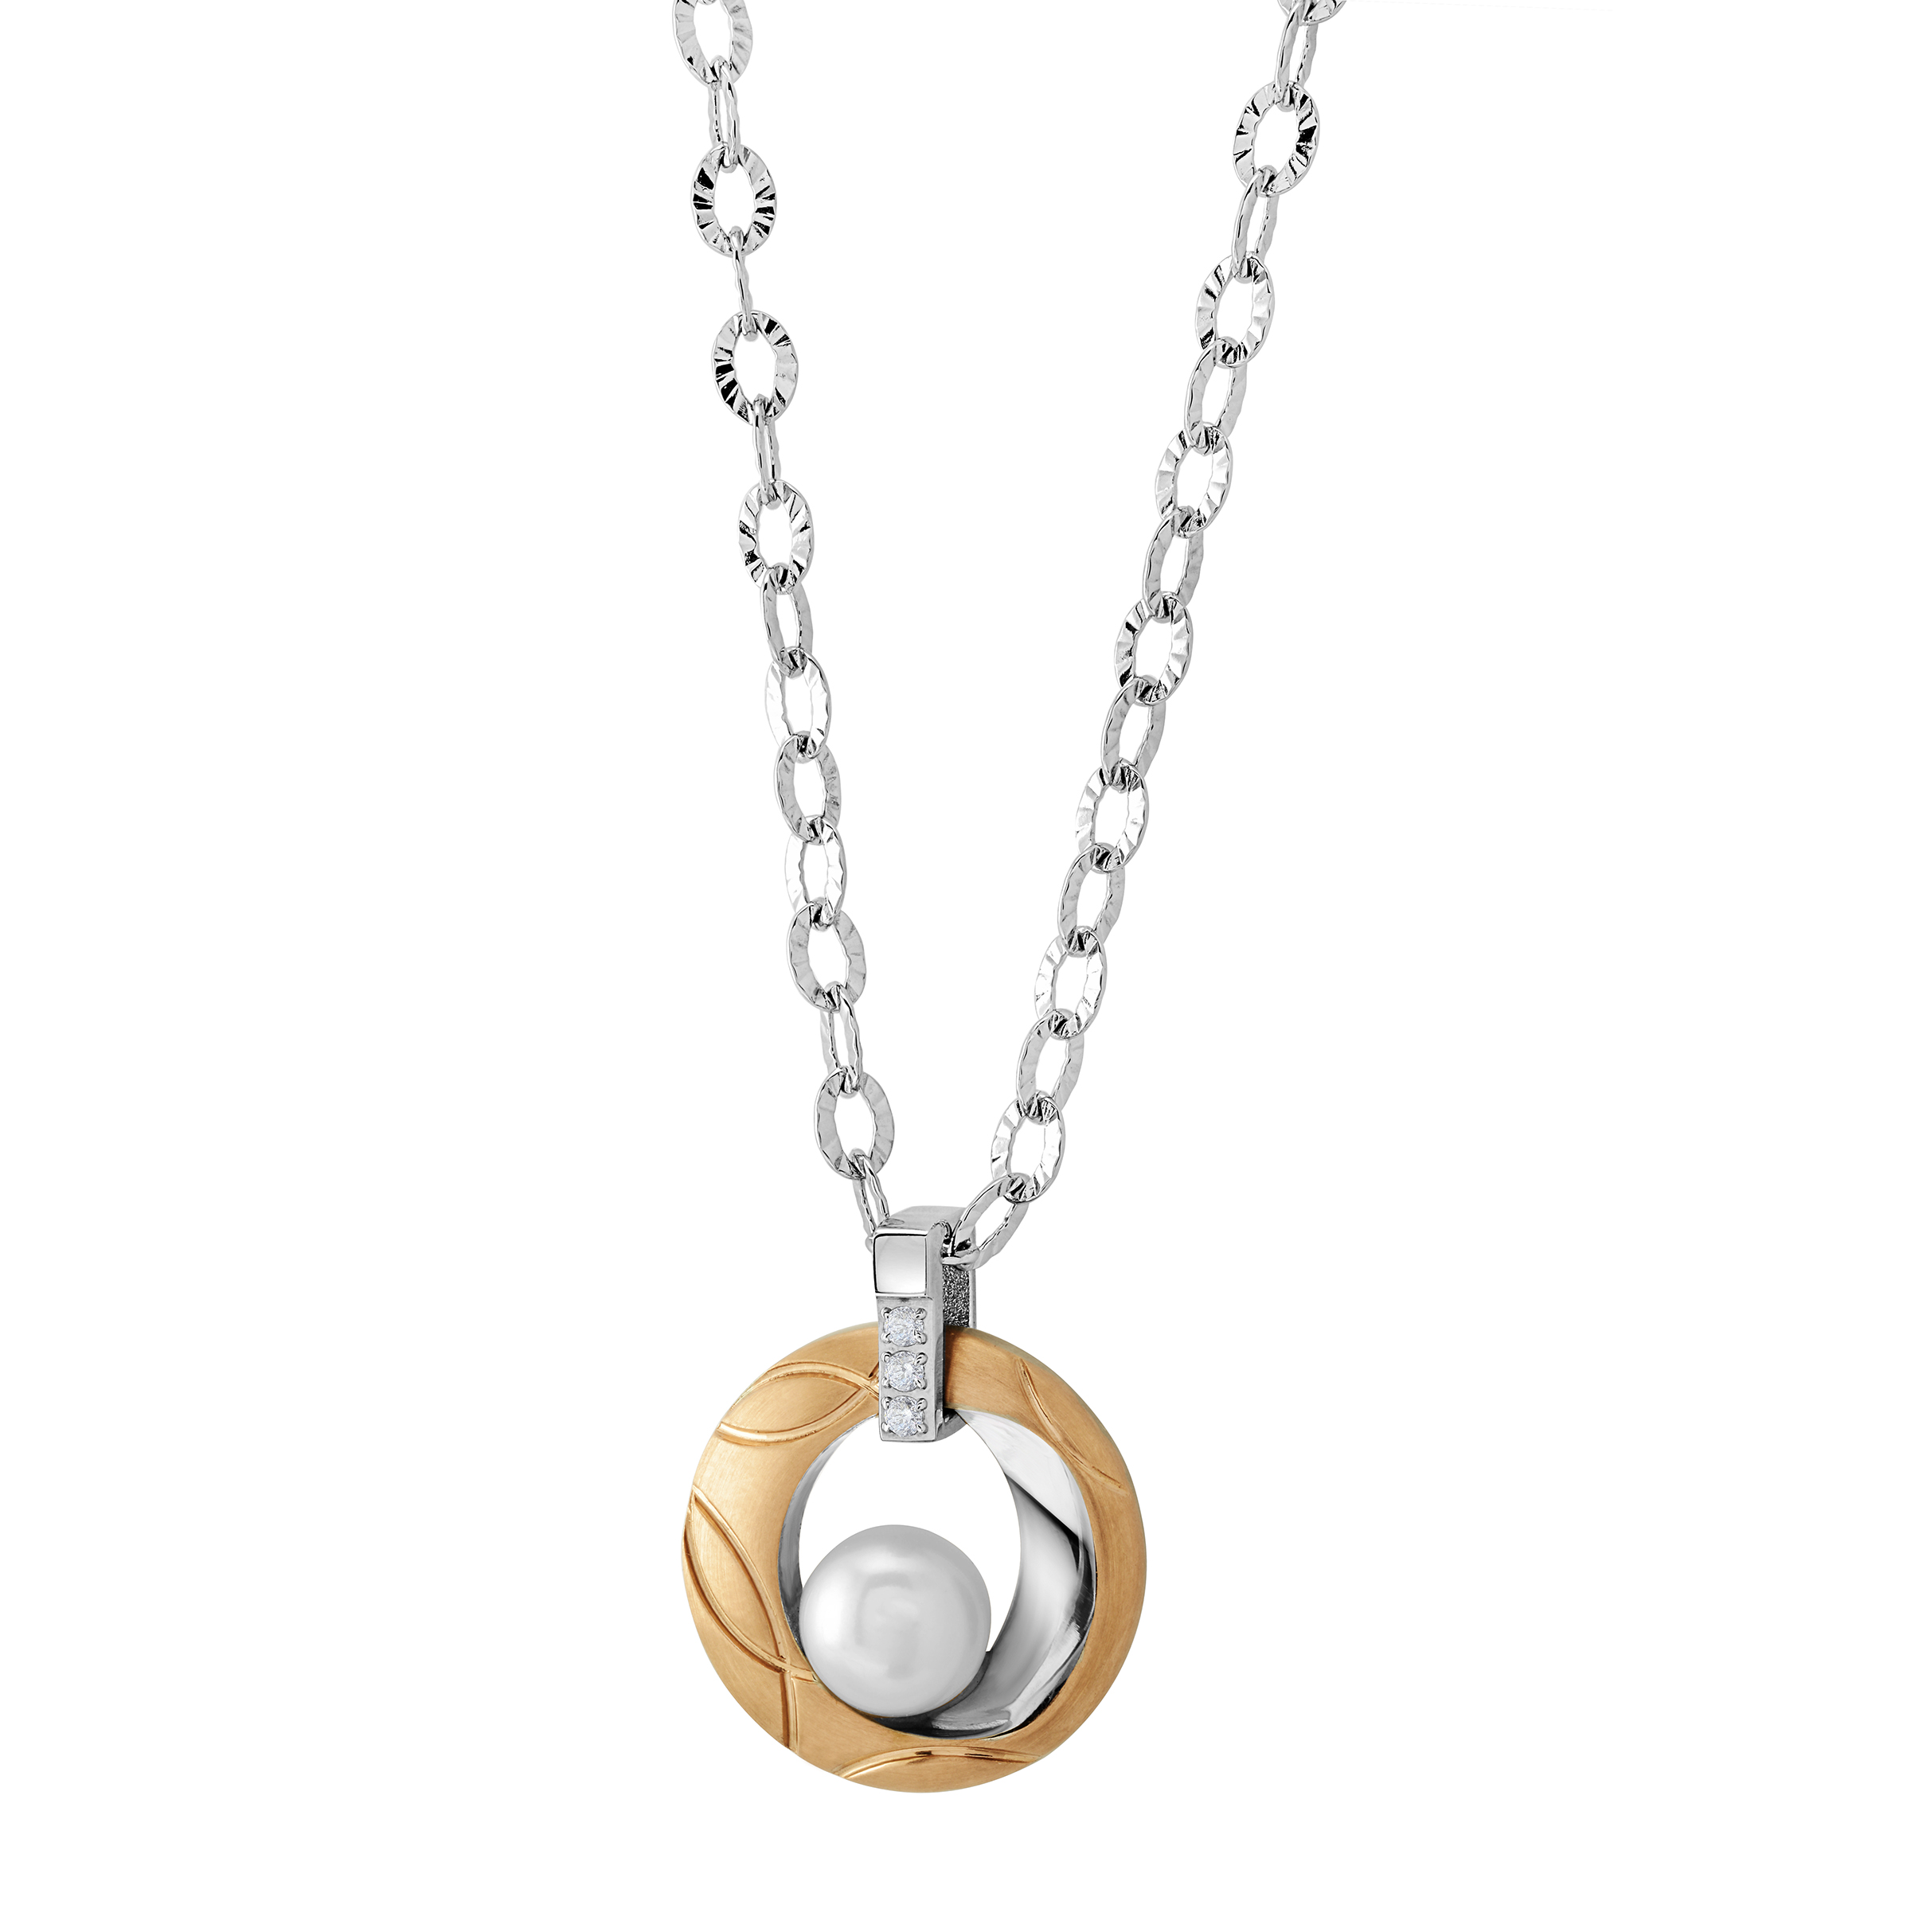 Women's Pendant - 2-tone stainless steel (silver and yellow) & 6mm fresh water pearl + cubic zirconia